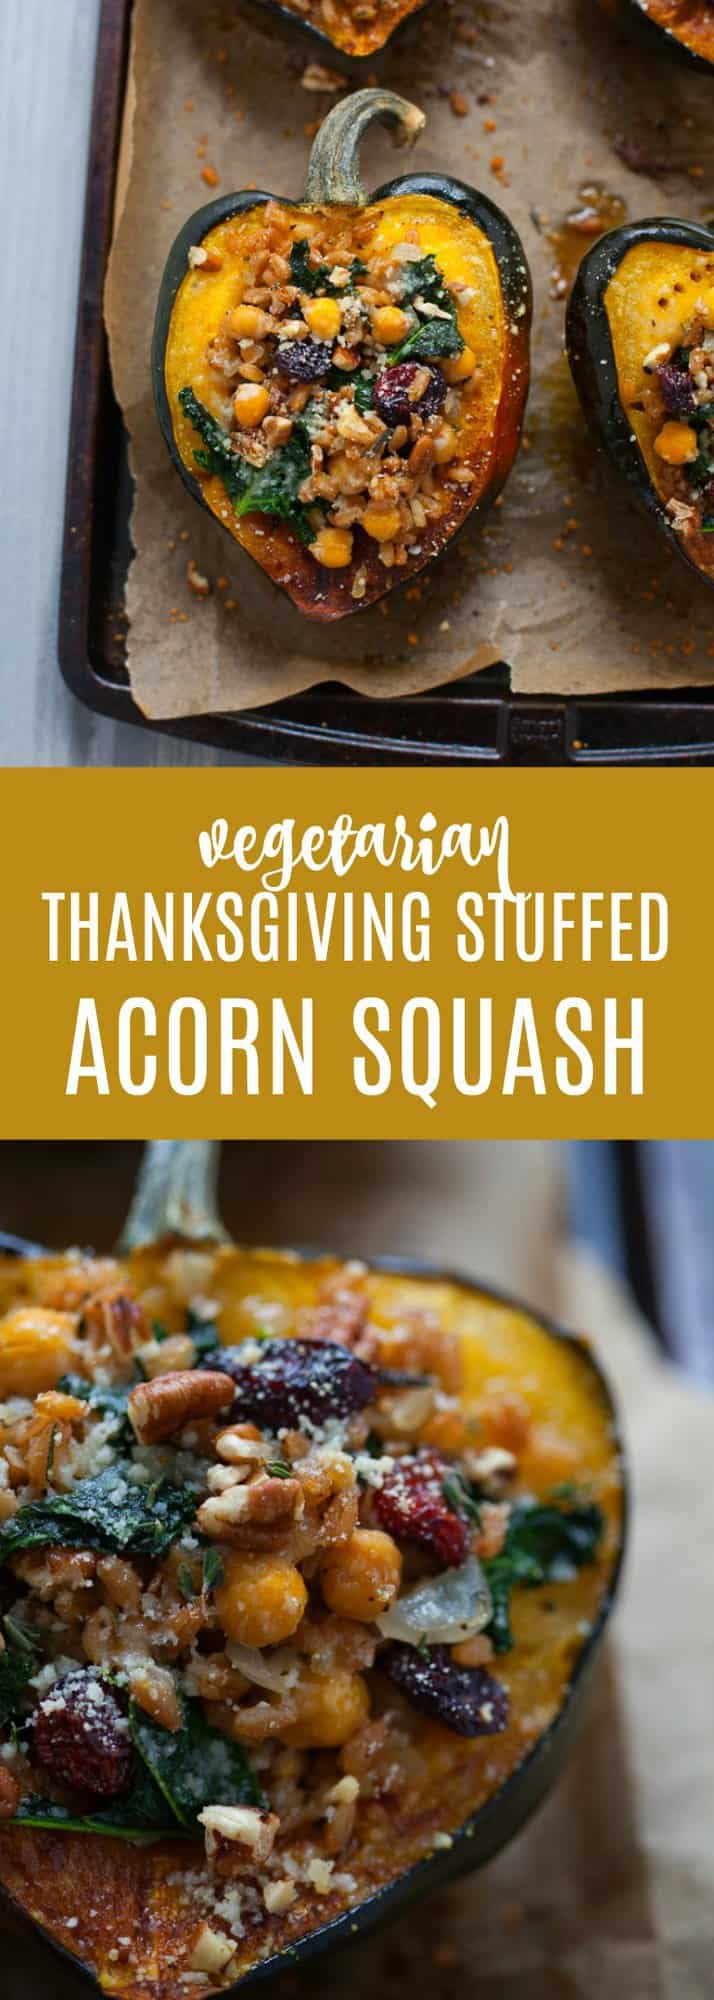 Looking for a delicious vegetarian side dish for the holidays? You gotta try my easy Thanksgiving Stuffed Acorn Squash made with farro, chickpeas, kale and cranberries!